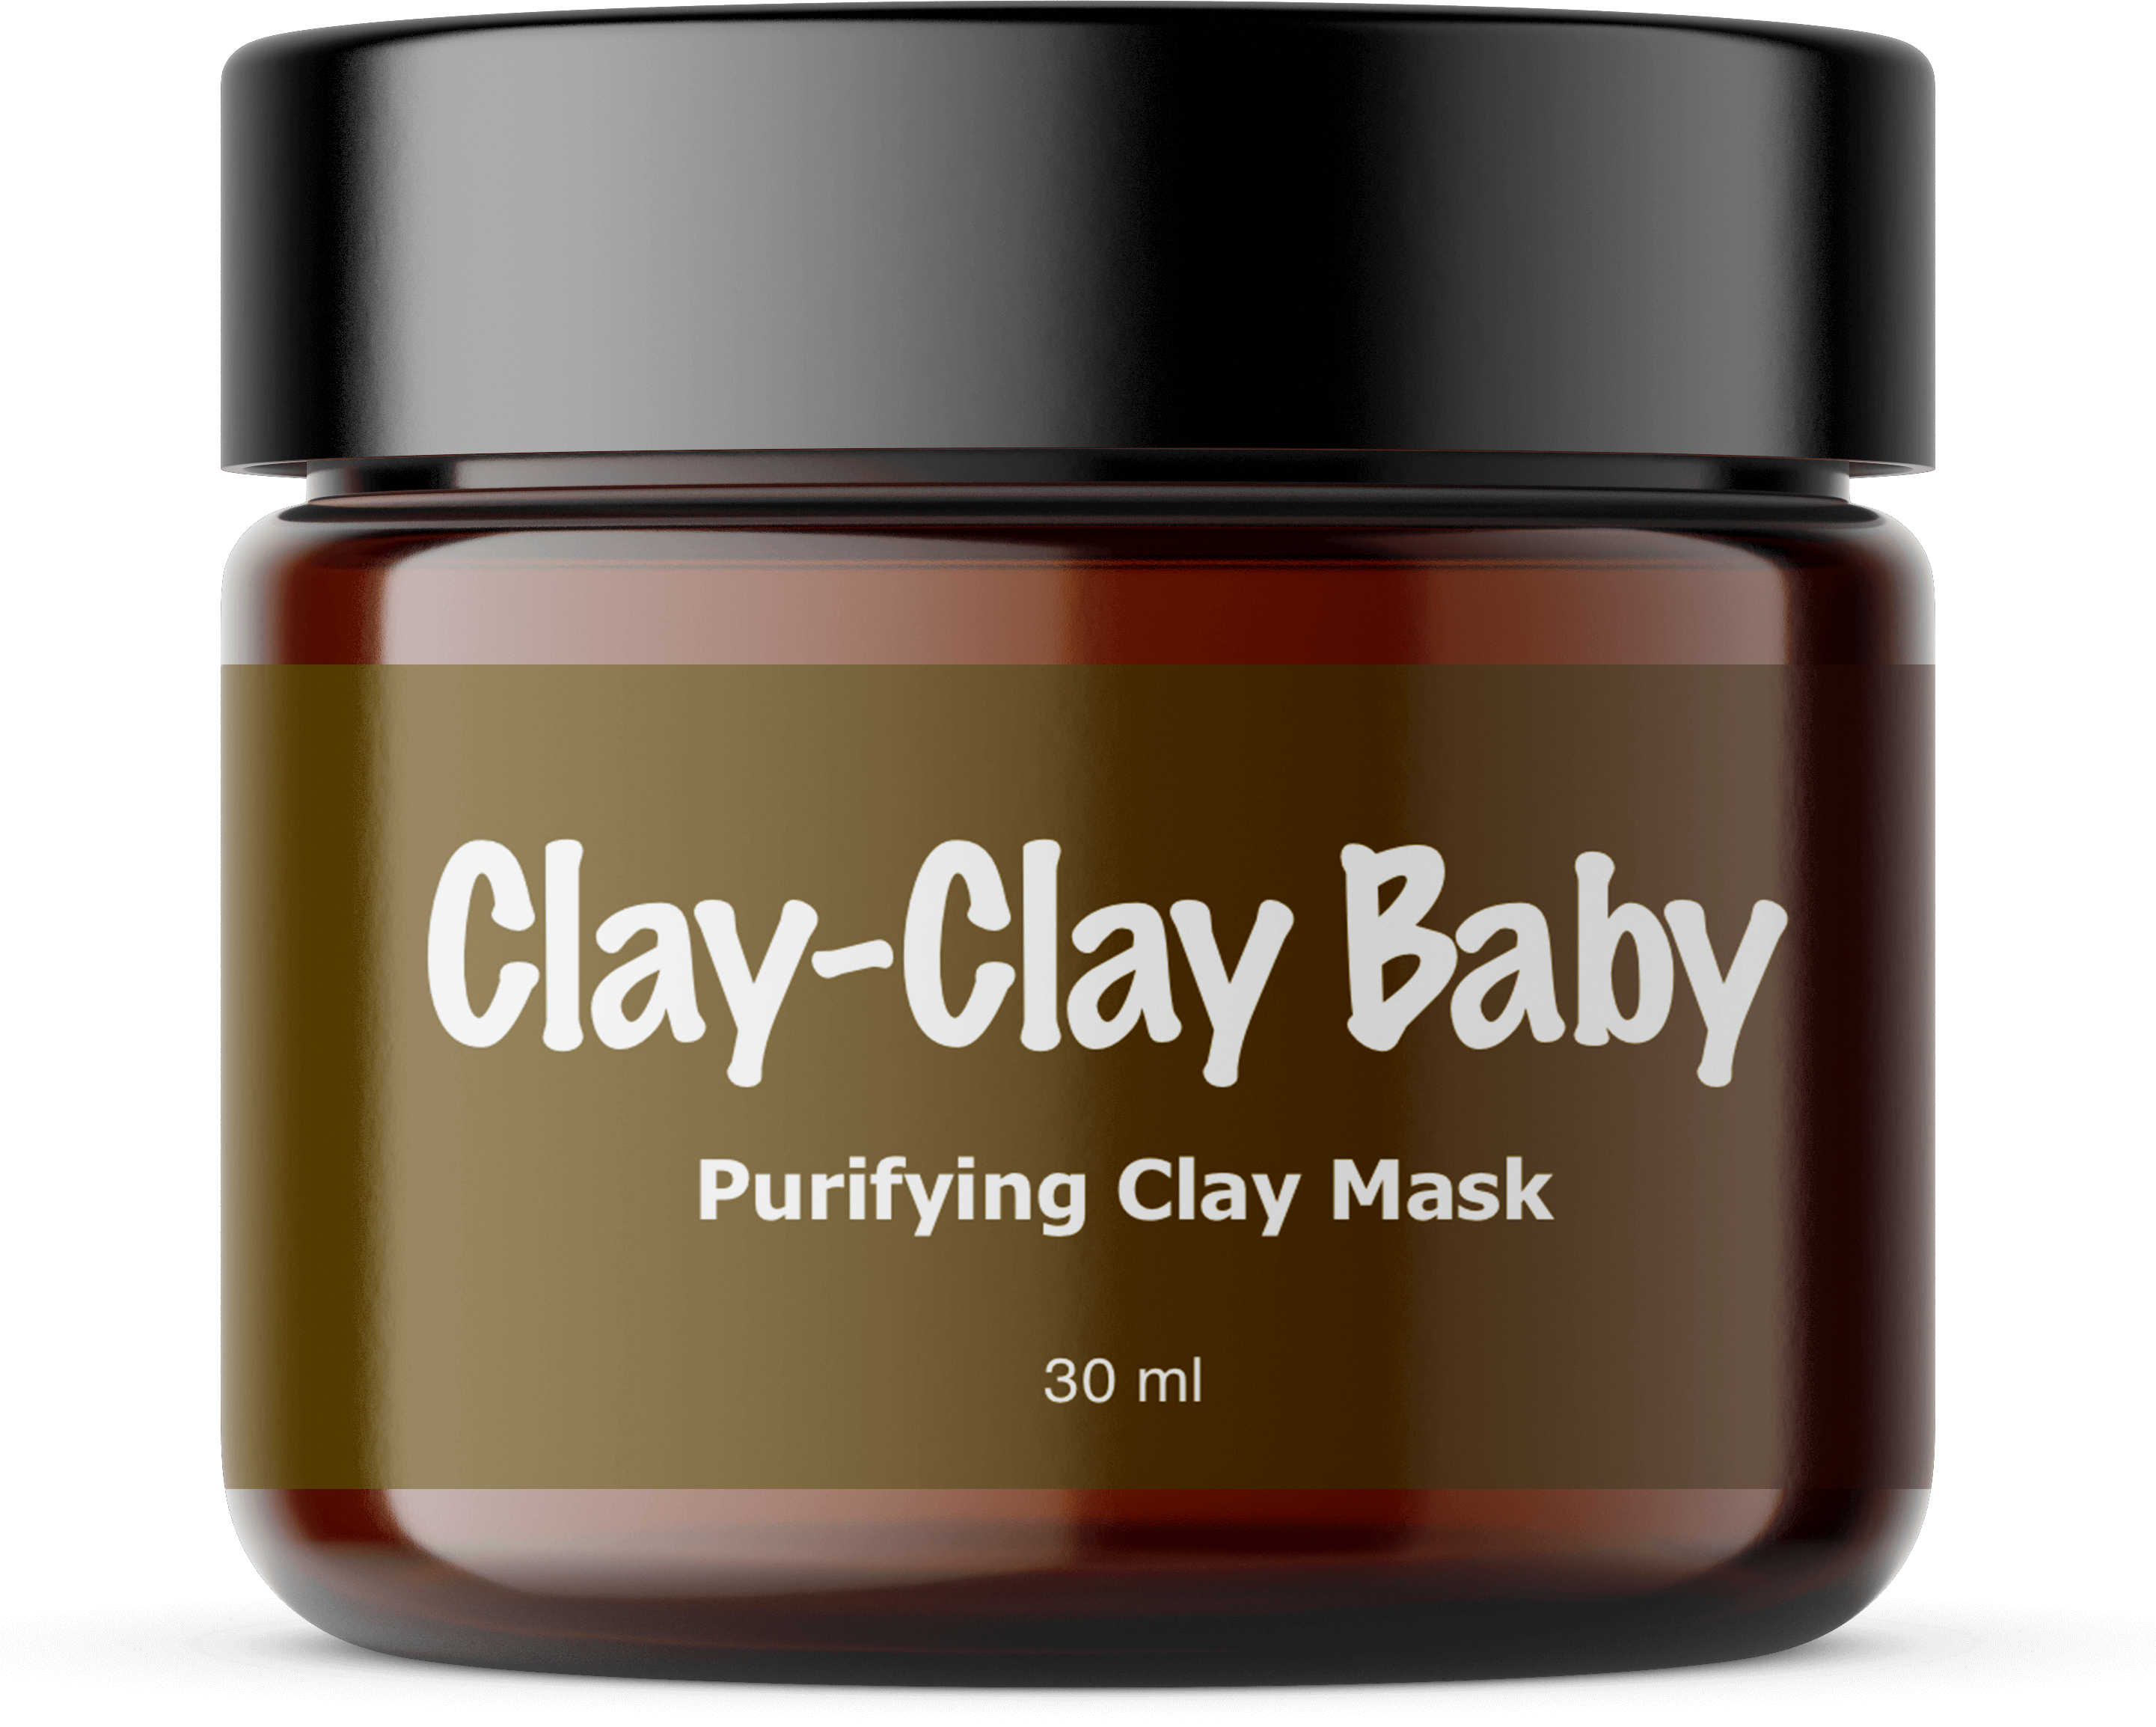 clayclaybaby_bottle-2